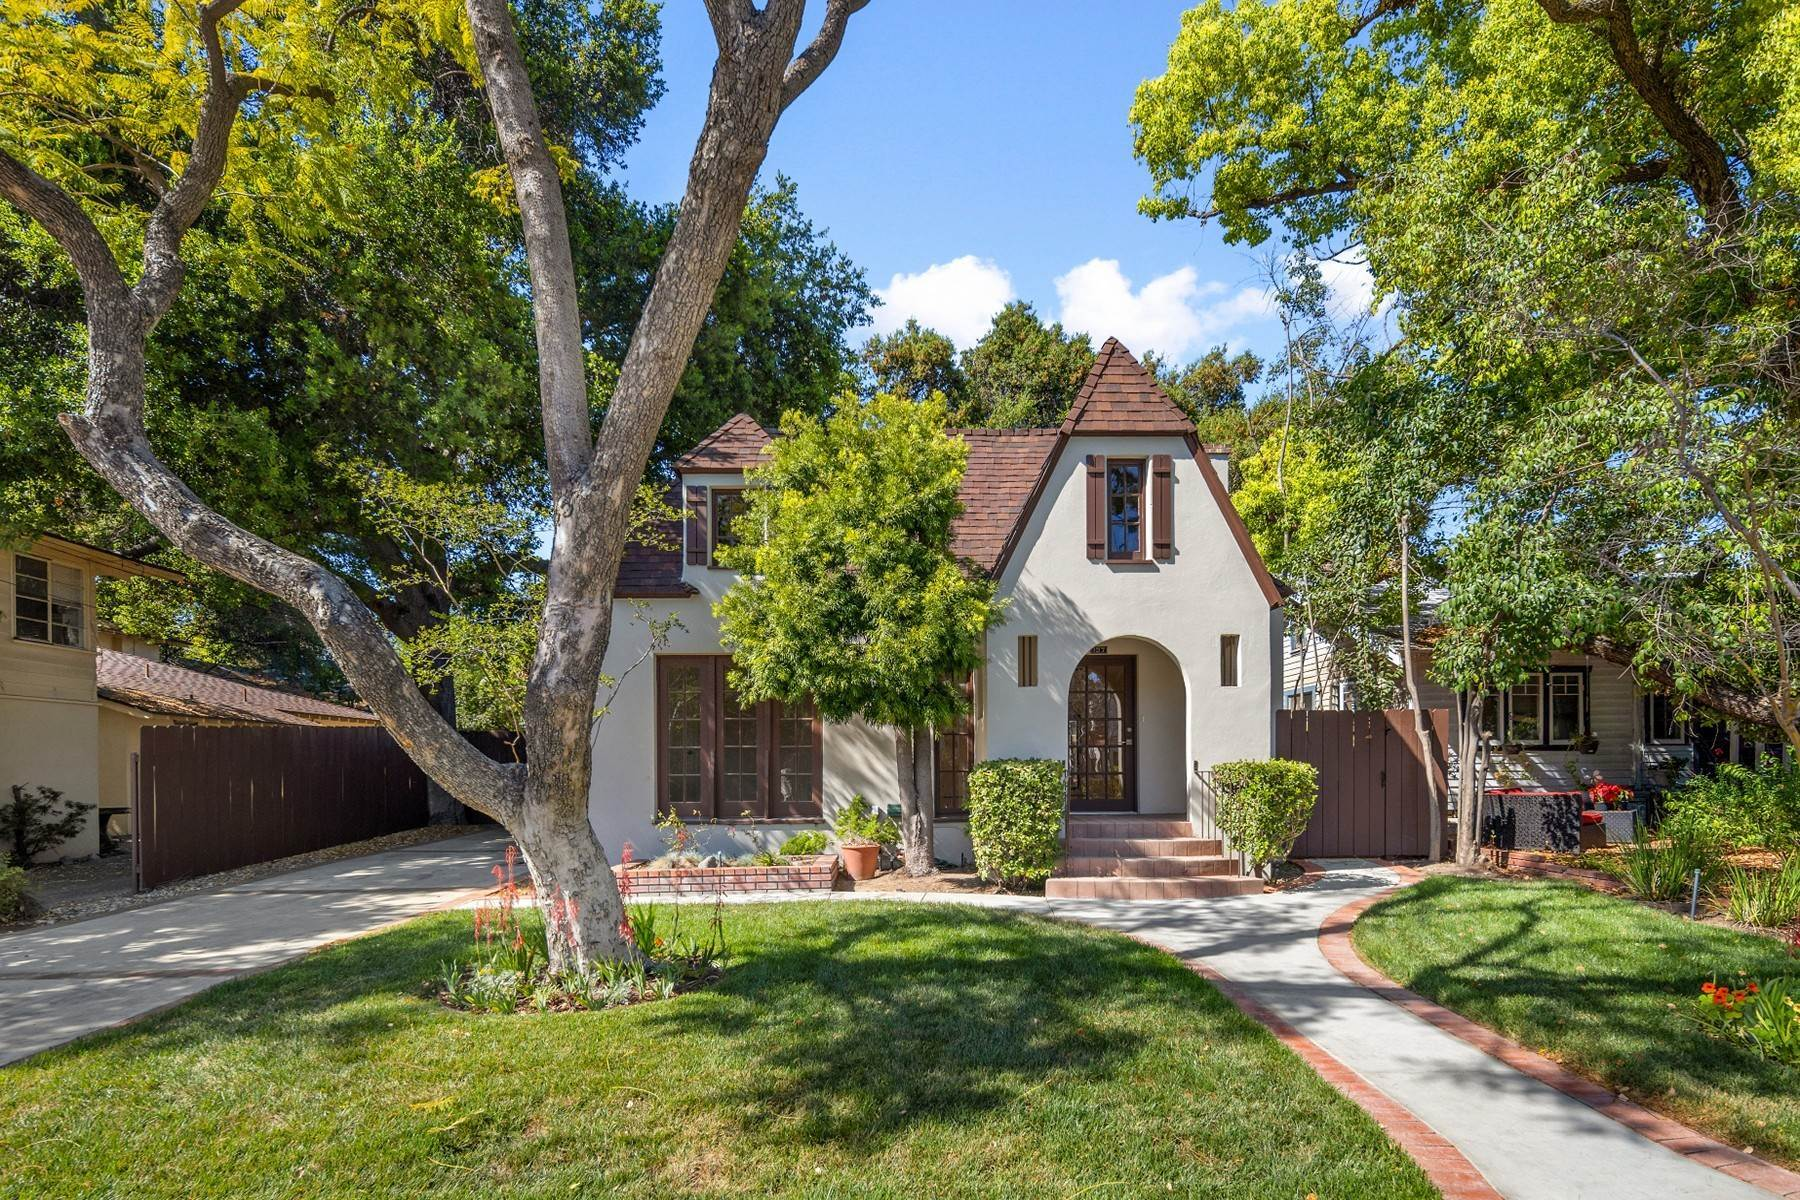 2. Single Family Homes for Sale at 137 W 8th Street, Claremont, CA 91711 137 W 8th Street Claremont, California 91711 United States